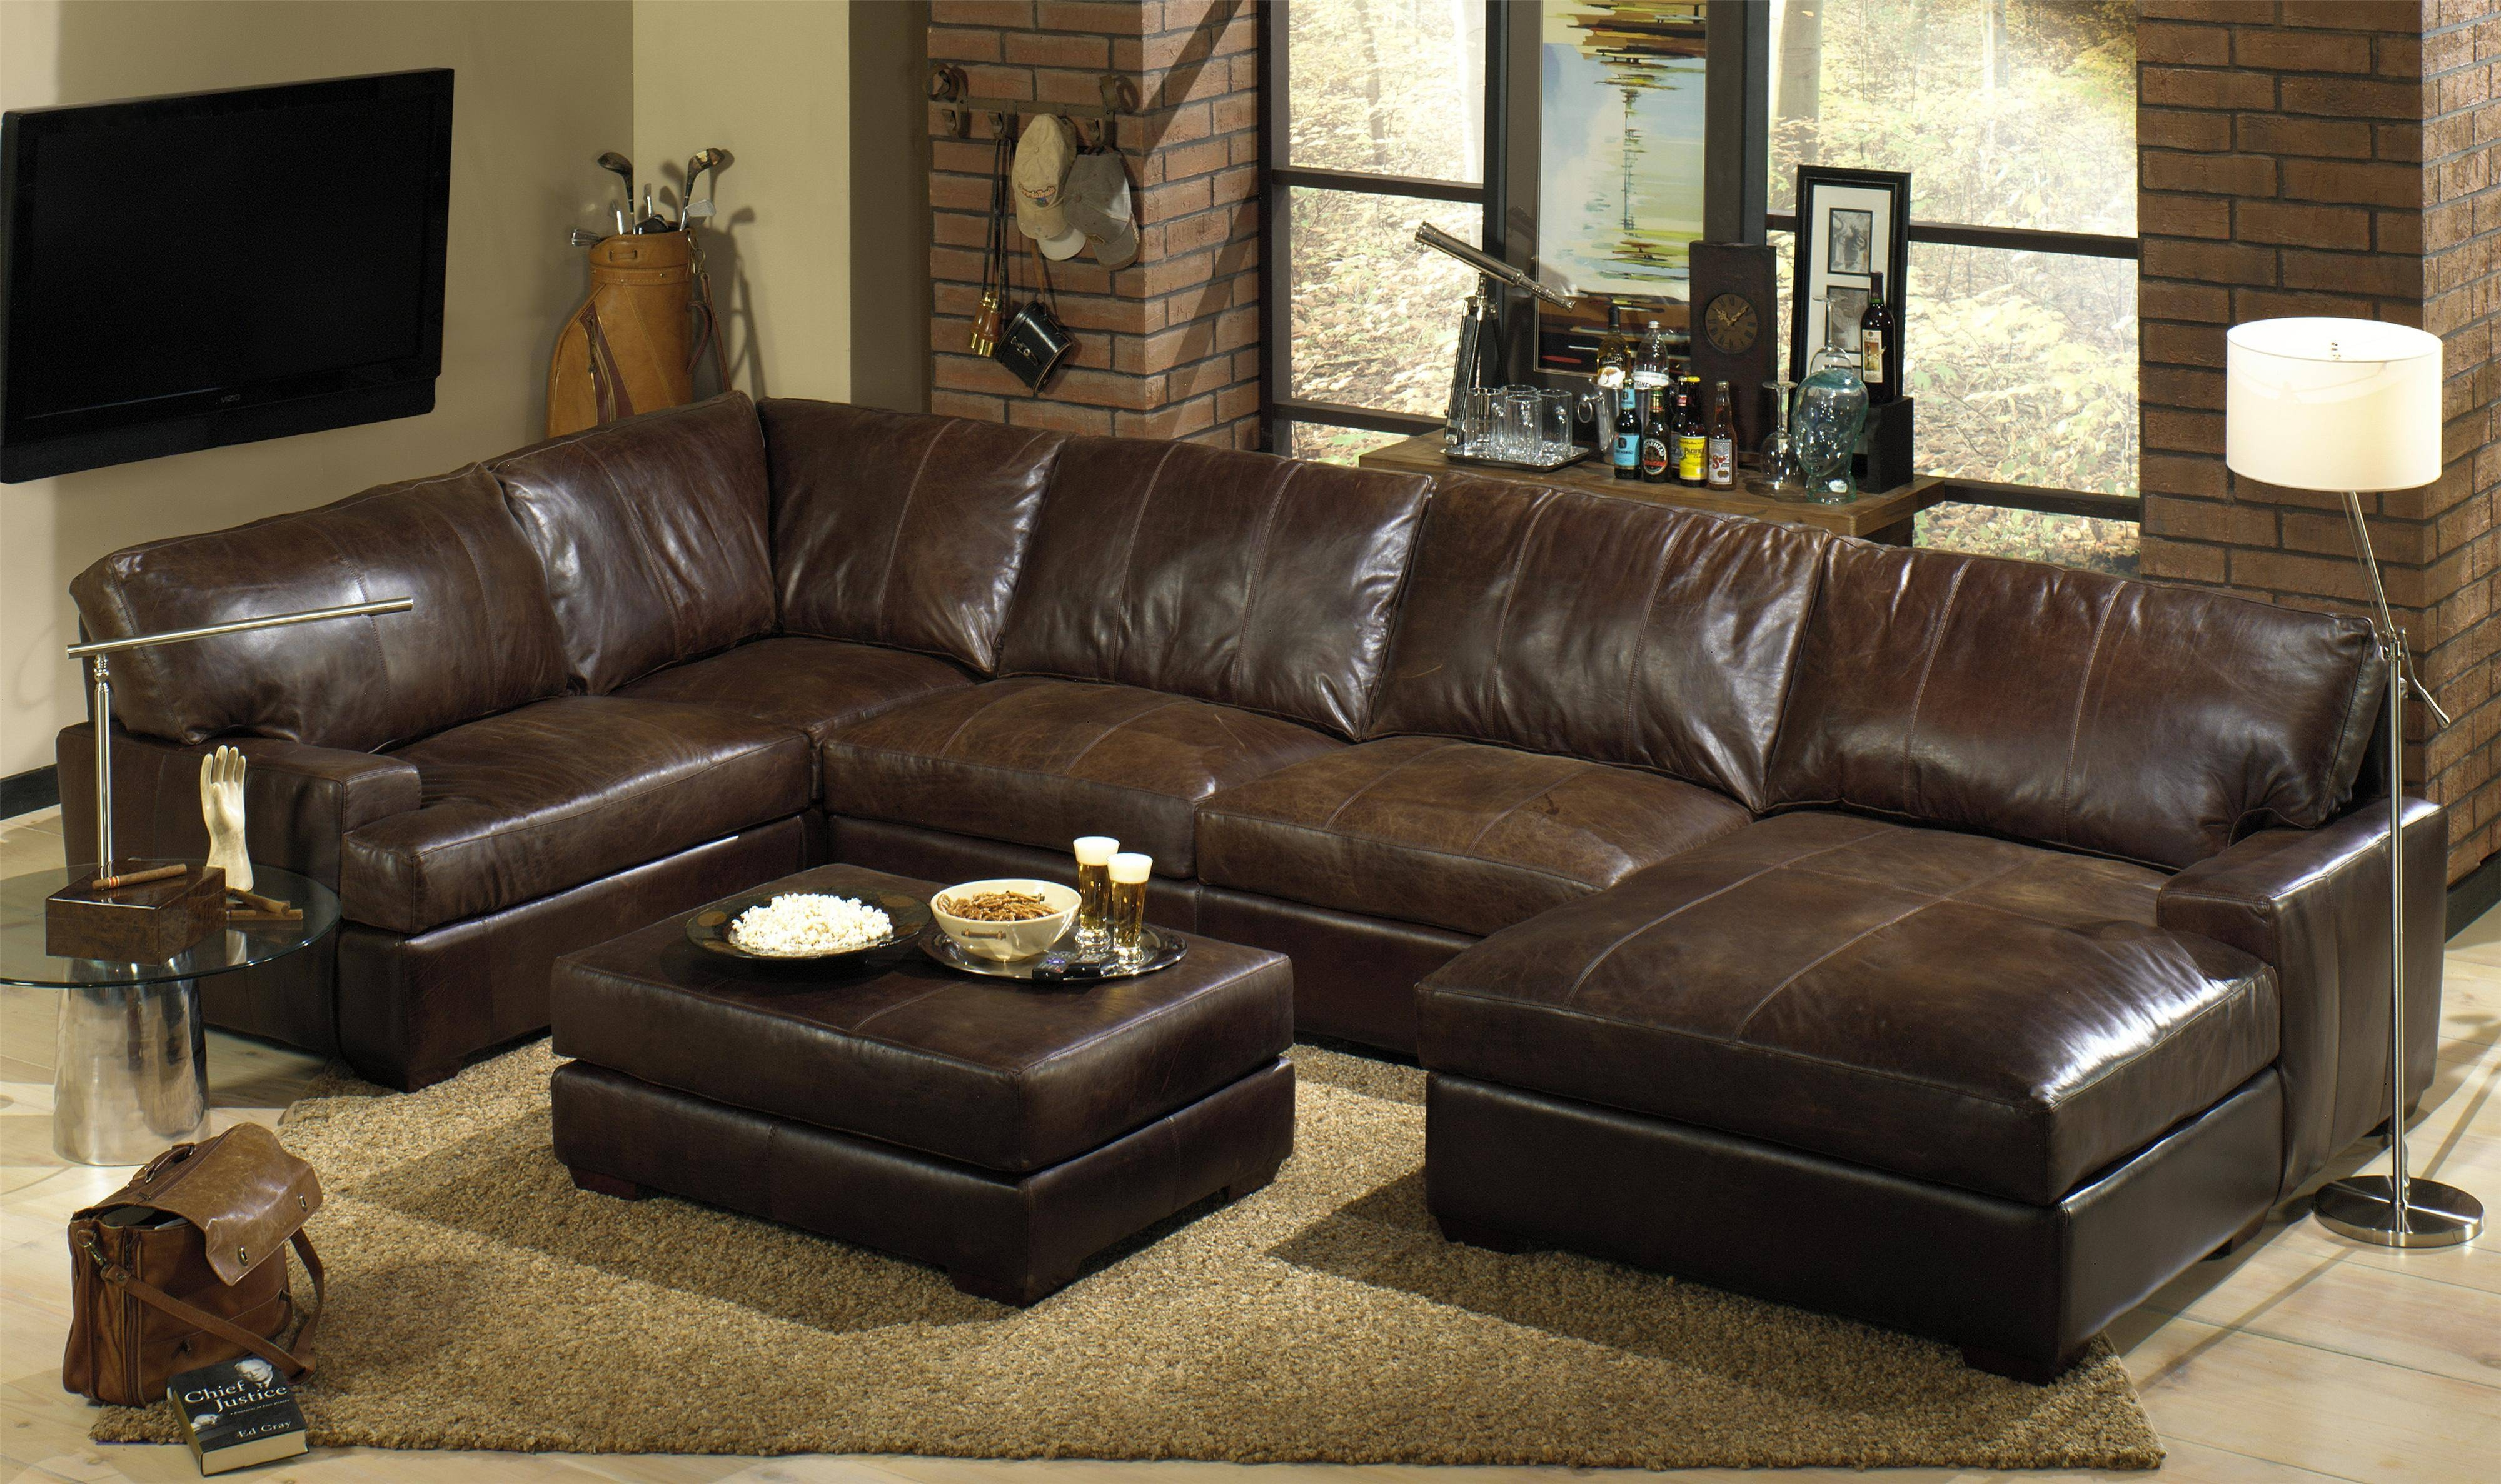 Sofas: Oversized Sofas | Tufted Sectional | Cheap Sectionals For Sale with regard to Sectional Sofa With Oversized Ottoman (Image 28 of 30)